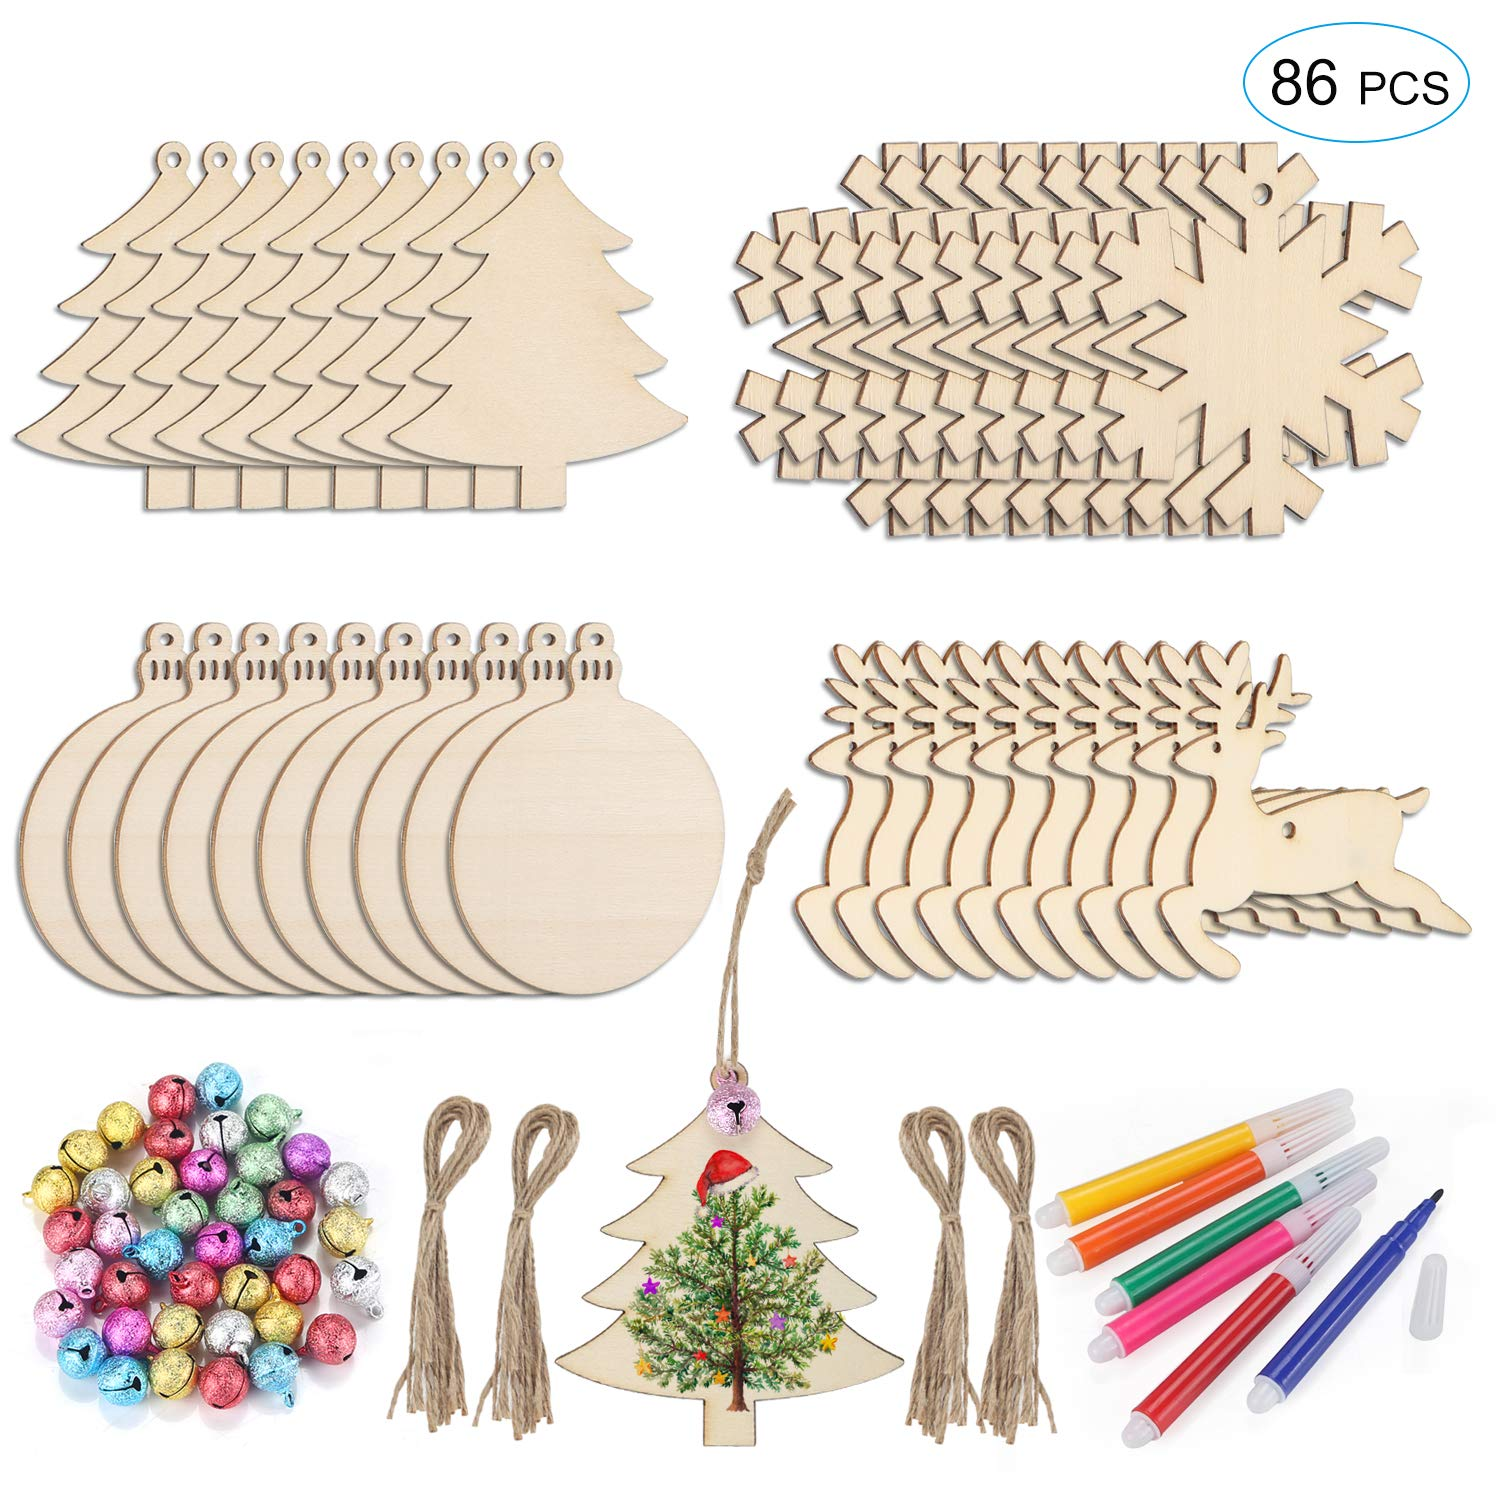 Unfinished Christmas Wooden Ornaments 86Pcs Set, HOMOR 40Pcs Paintable Blank Natural Wood Slices with 32ft Jute Twine 40Pcs Scrub Bells 6Pcs Color Pens DIY Crafts Christmas Ornaments Decorations Gift